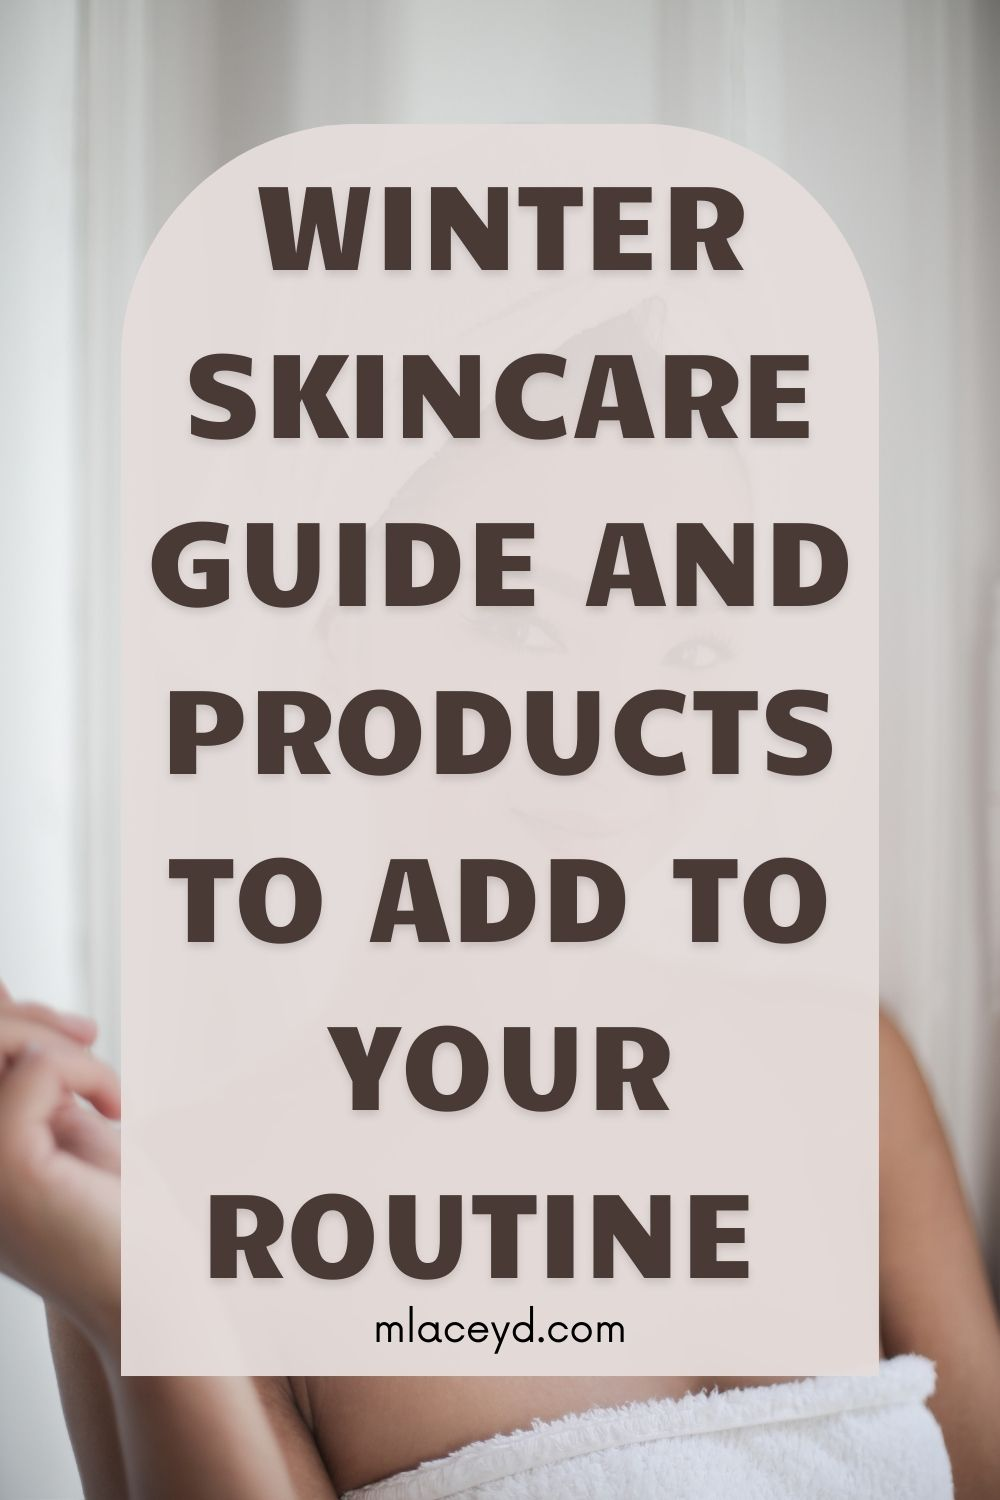 Winter skincare tips and product recommendations